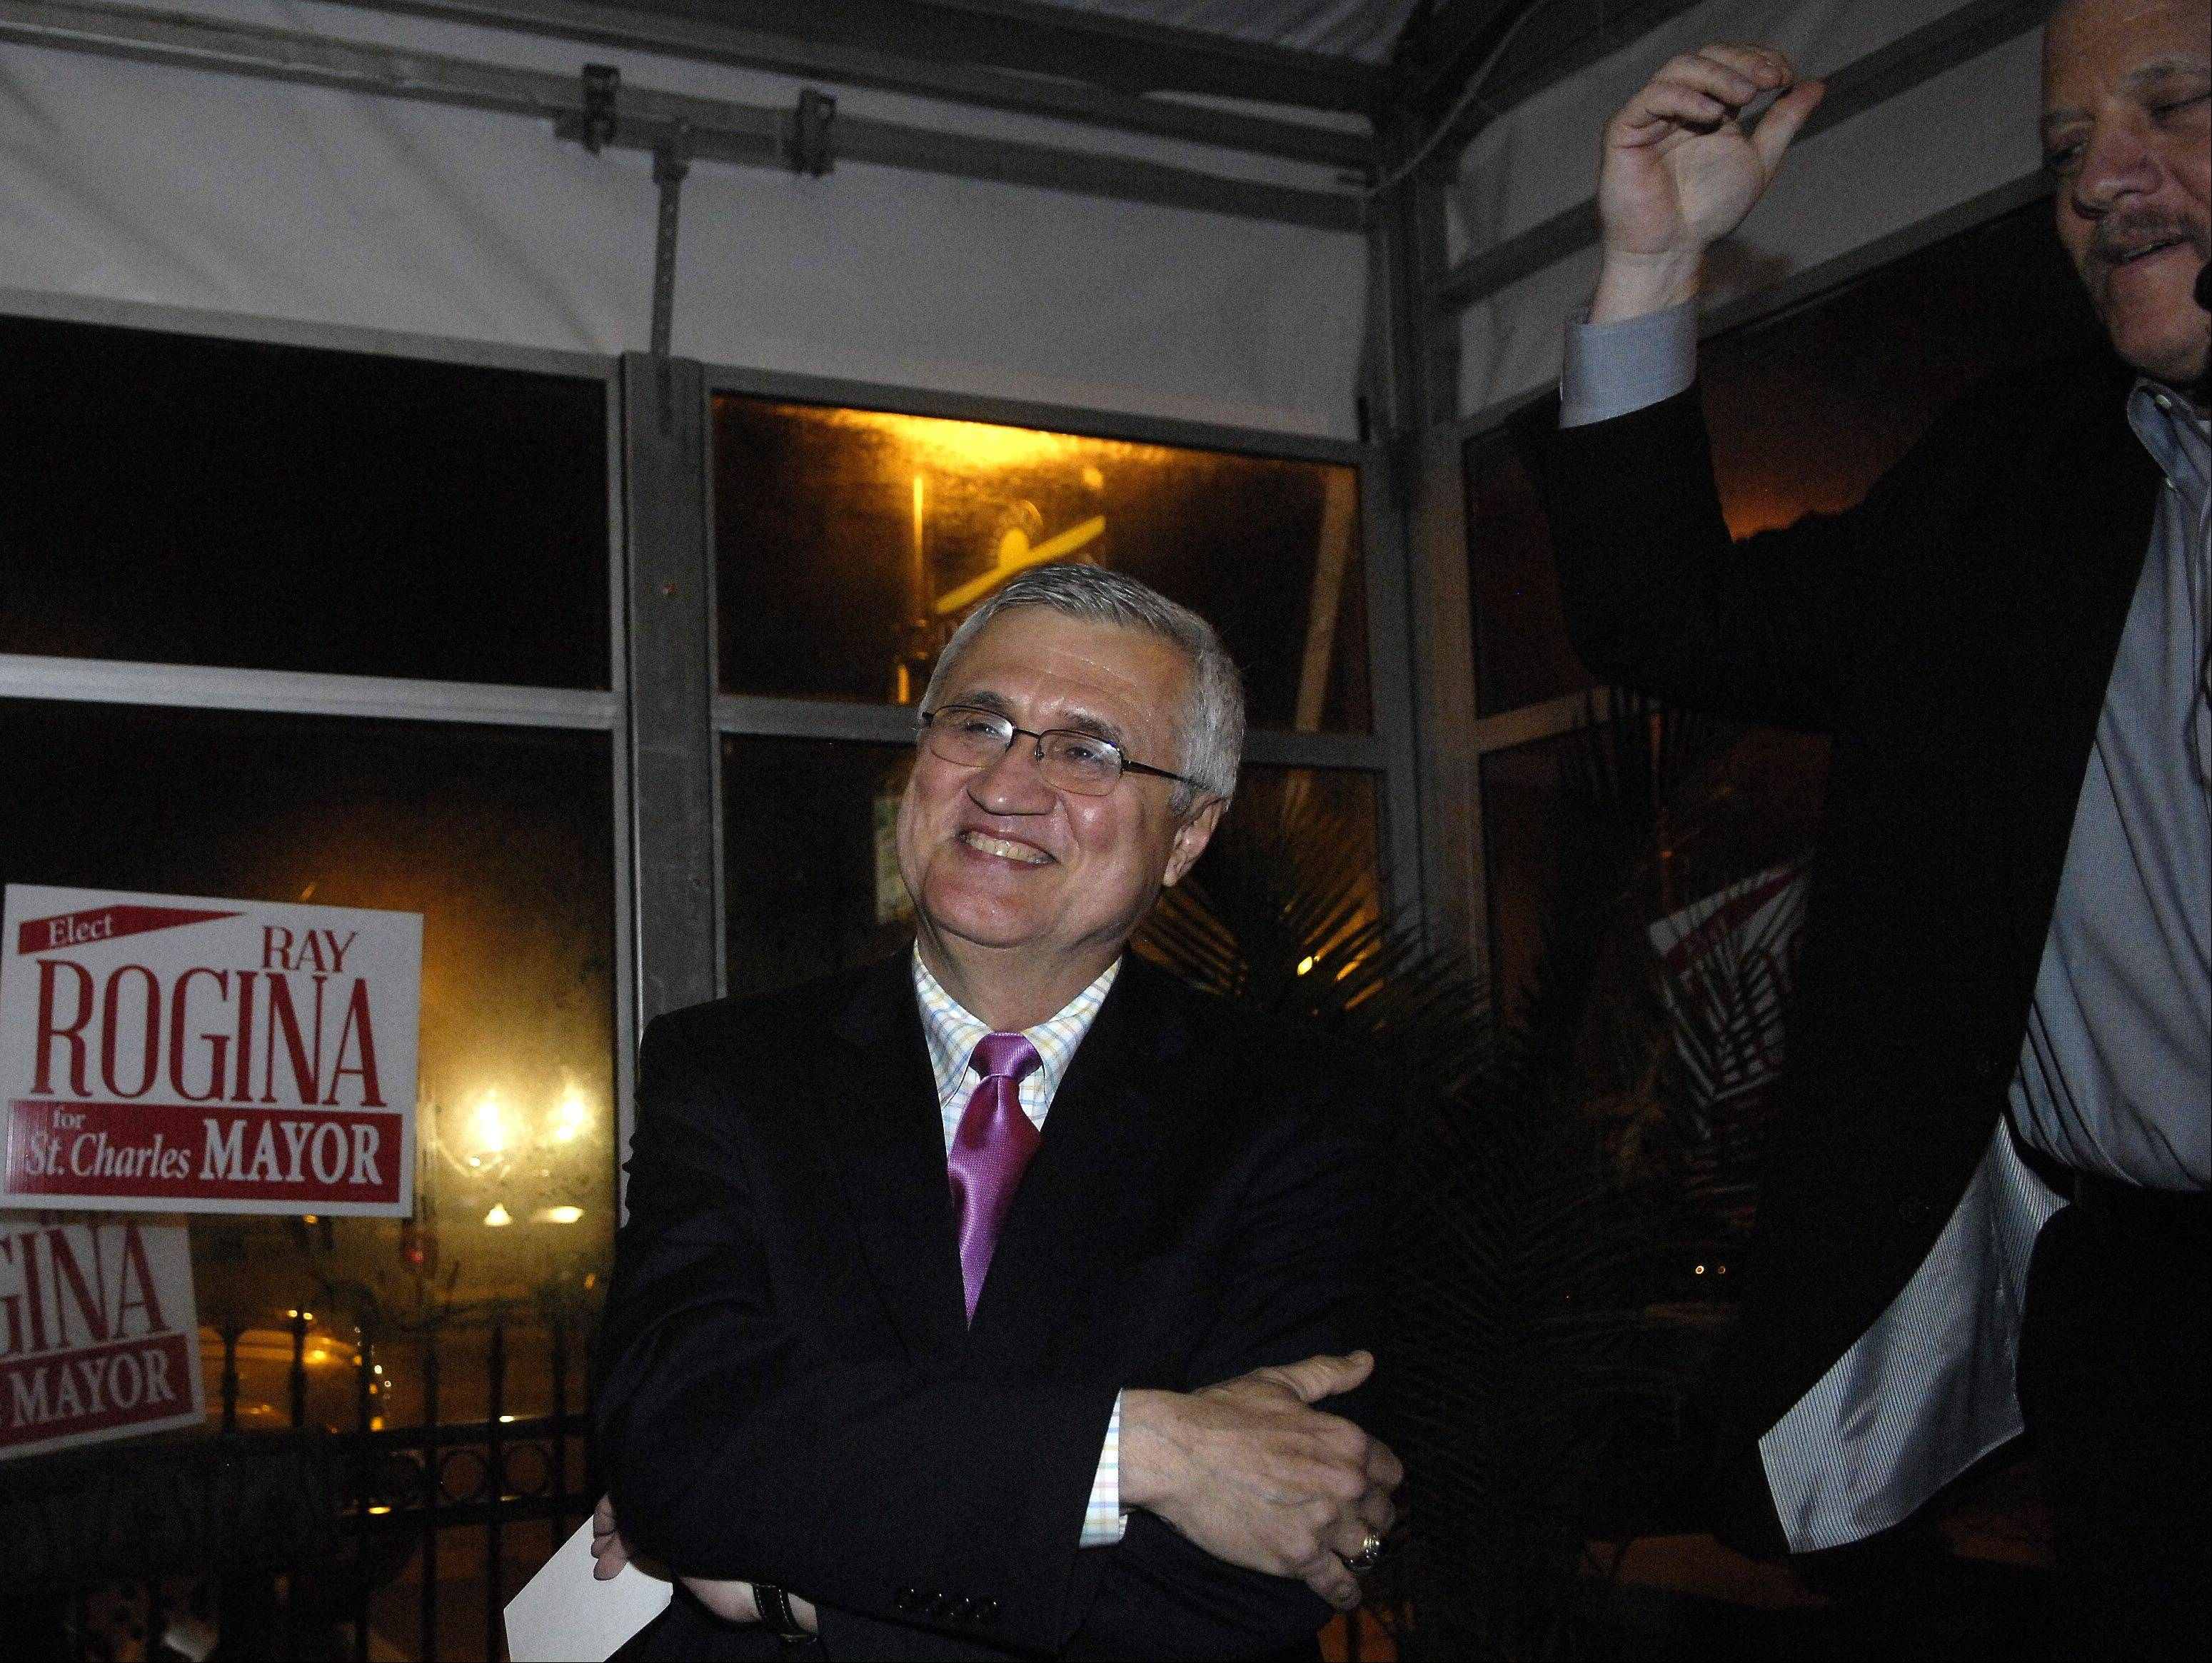 Ray Rogina is introduced as the new mayor of St. Charles by Alderman Dan Stellato on election night last month.